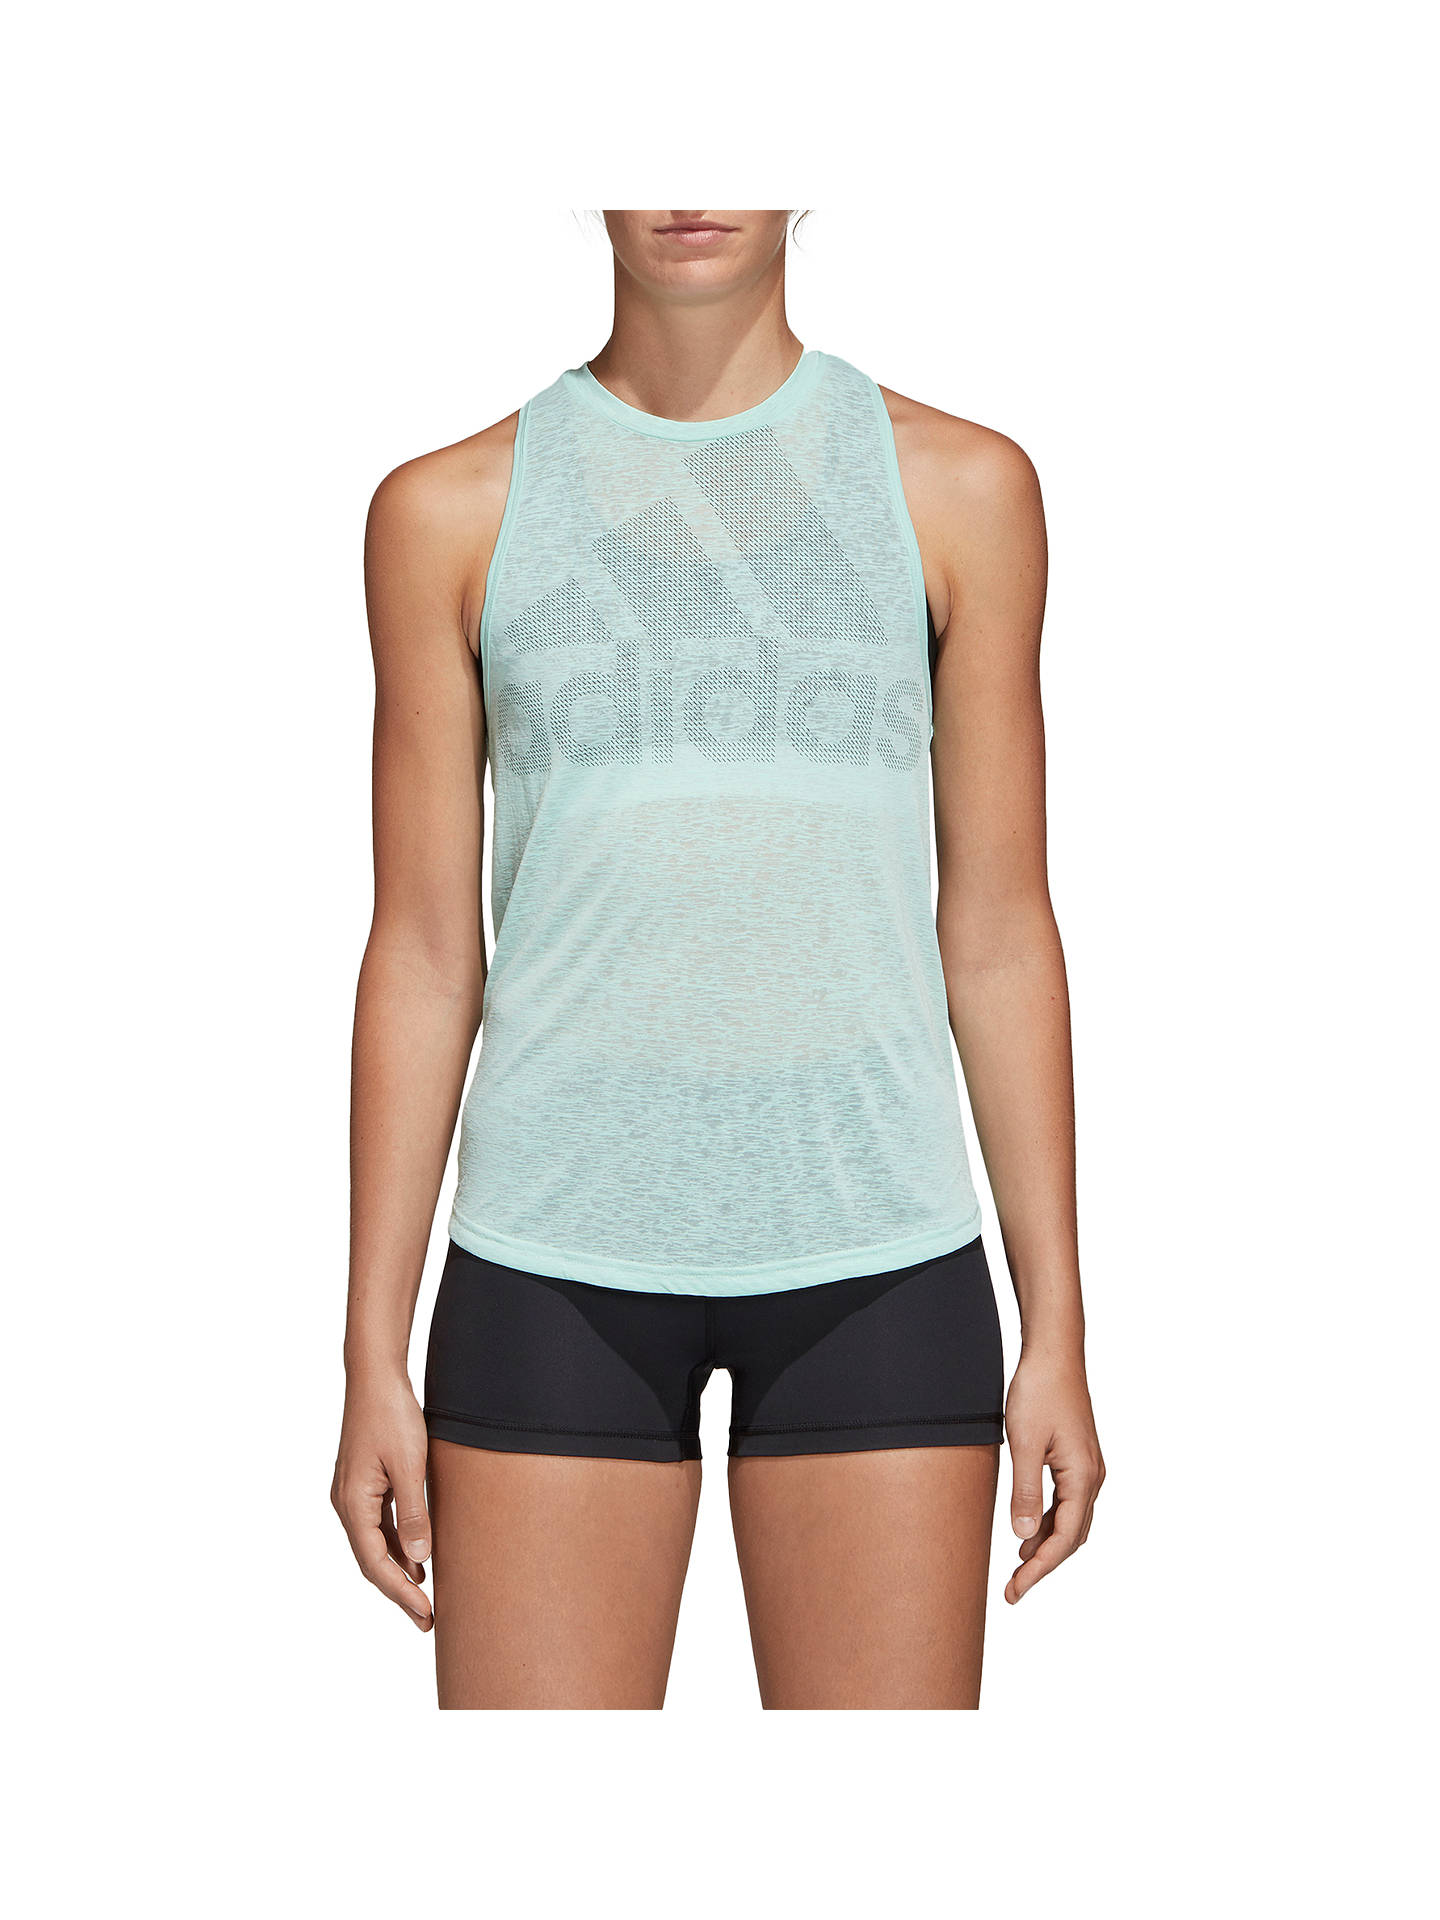 Buyadidas Magic Logo Tank Training Top, Clear Mint, XS Online at johnlewis.com